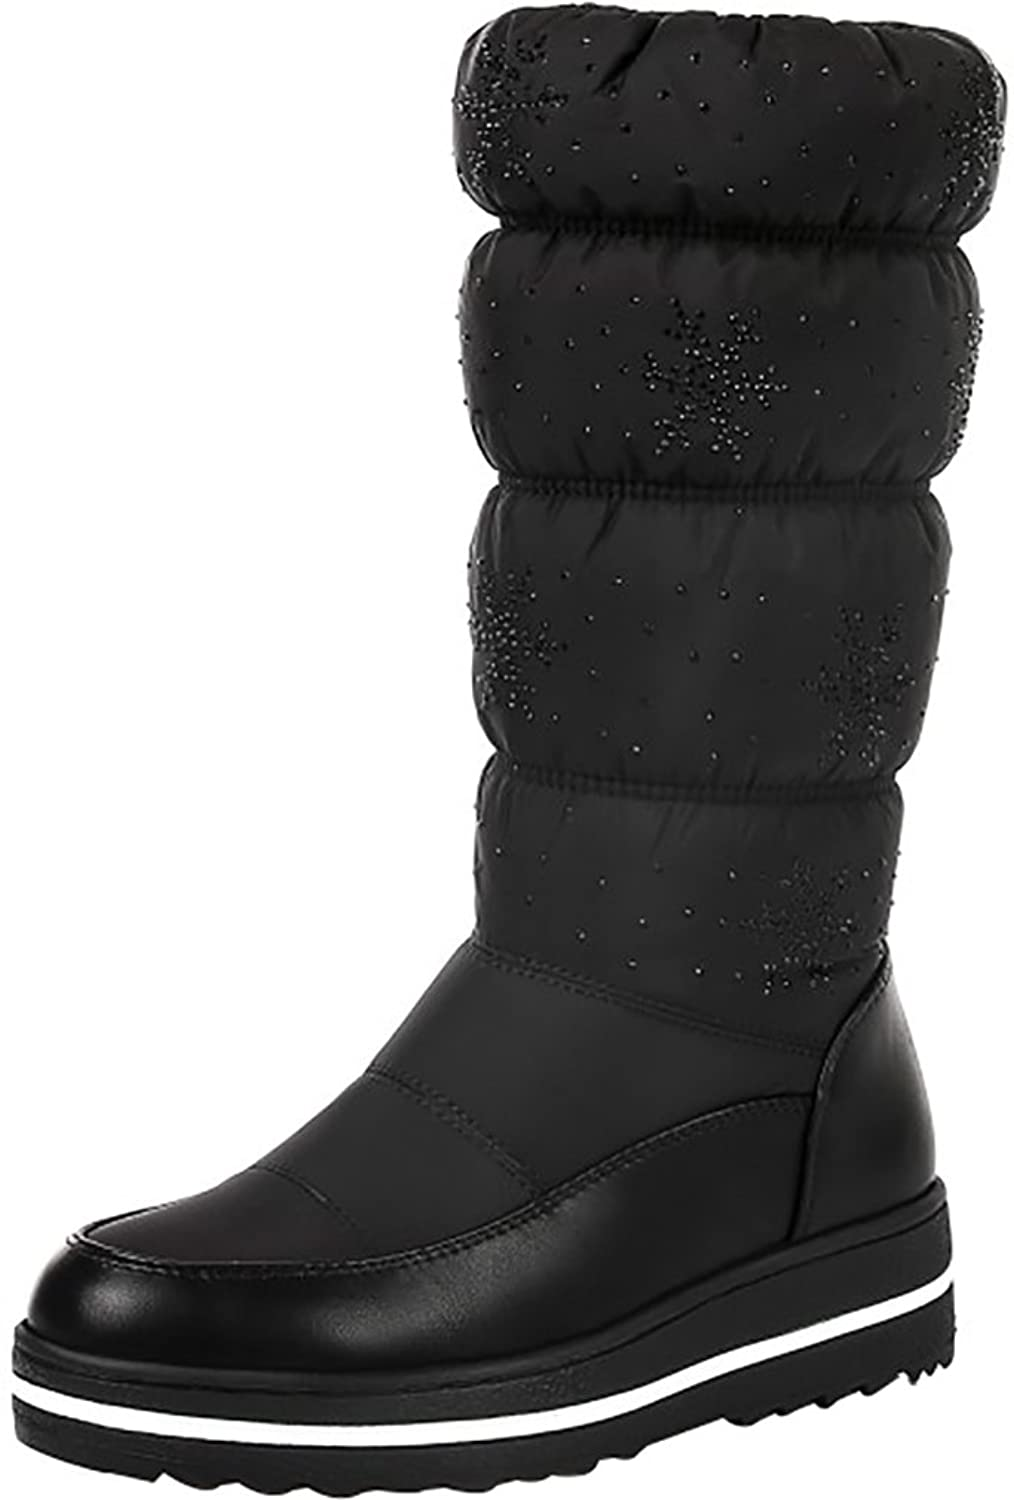 Womens Abaat8 Round-Toe CM Pull-On Boots Shoes